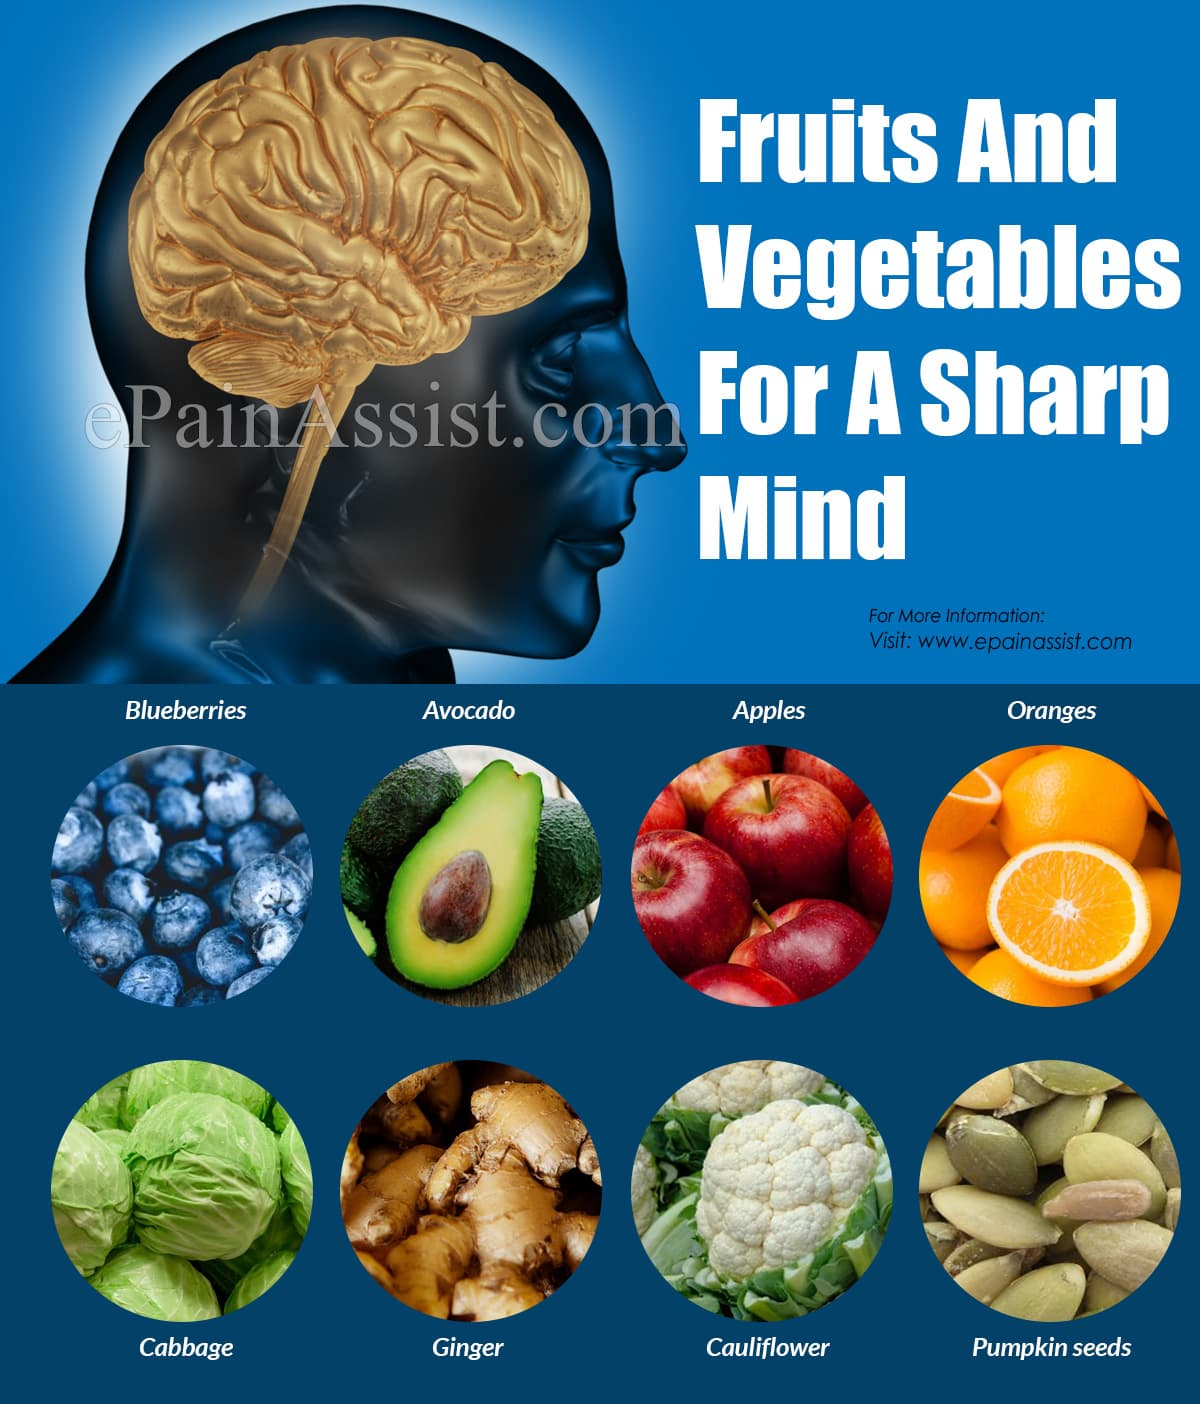 Fruits And Vegetables For A Sharp Mind